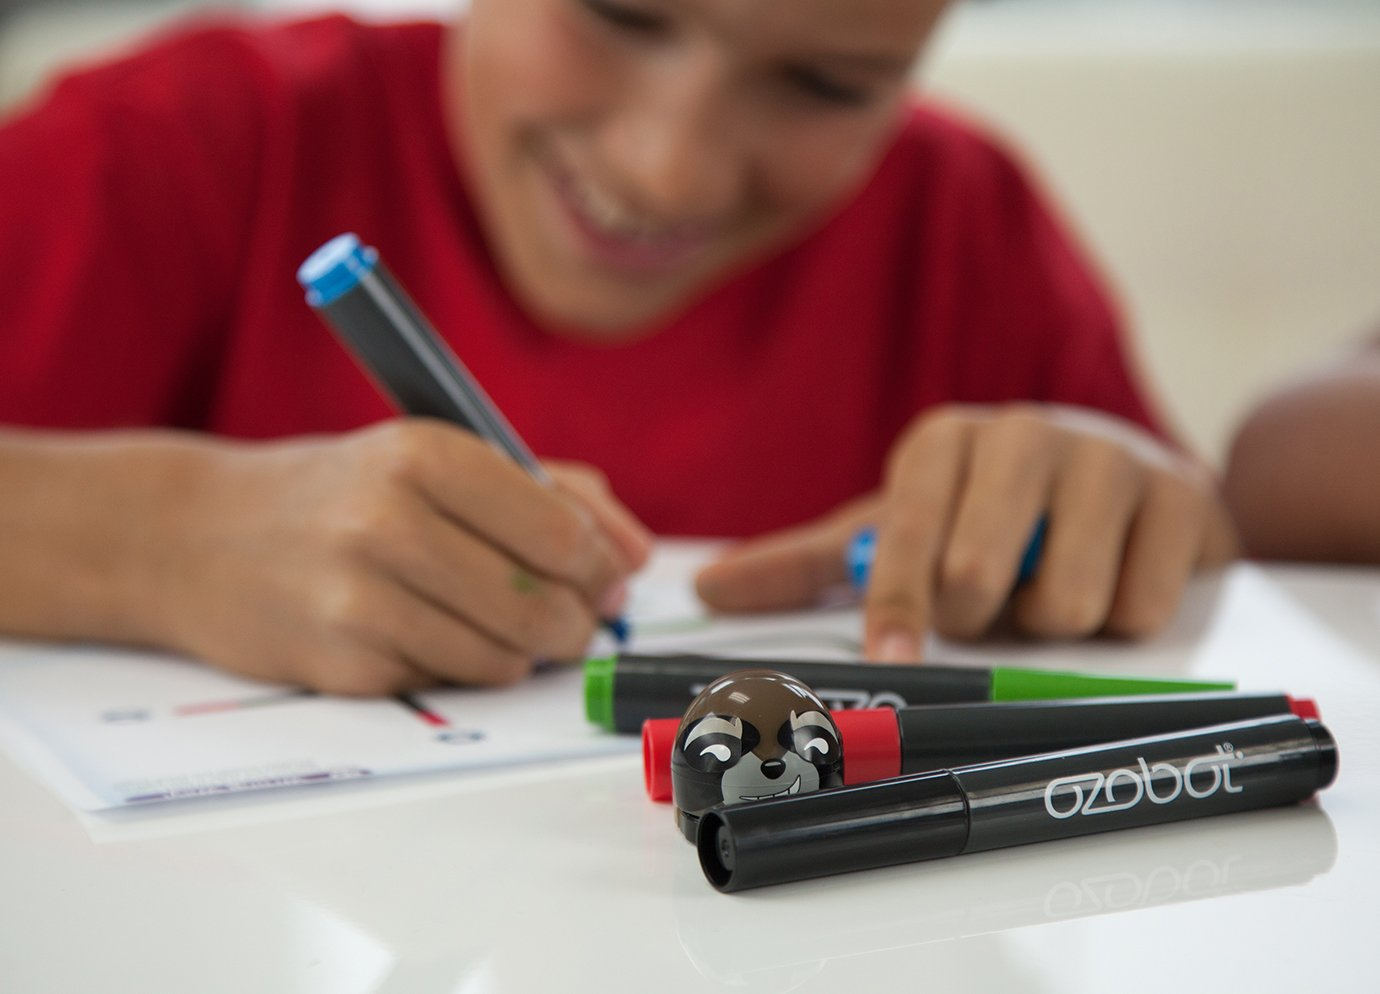 Bit Coding Robot, Guardians of the Galaxy (Black) by Ozobot (Image #5)